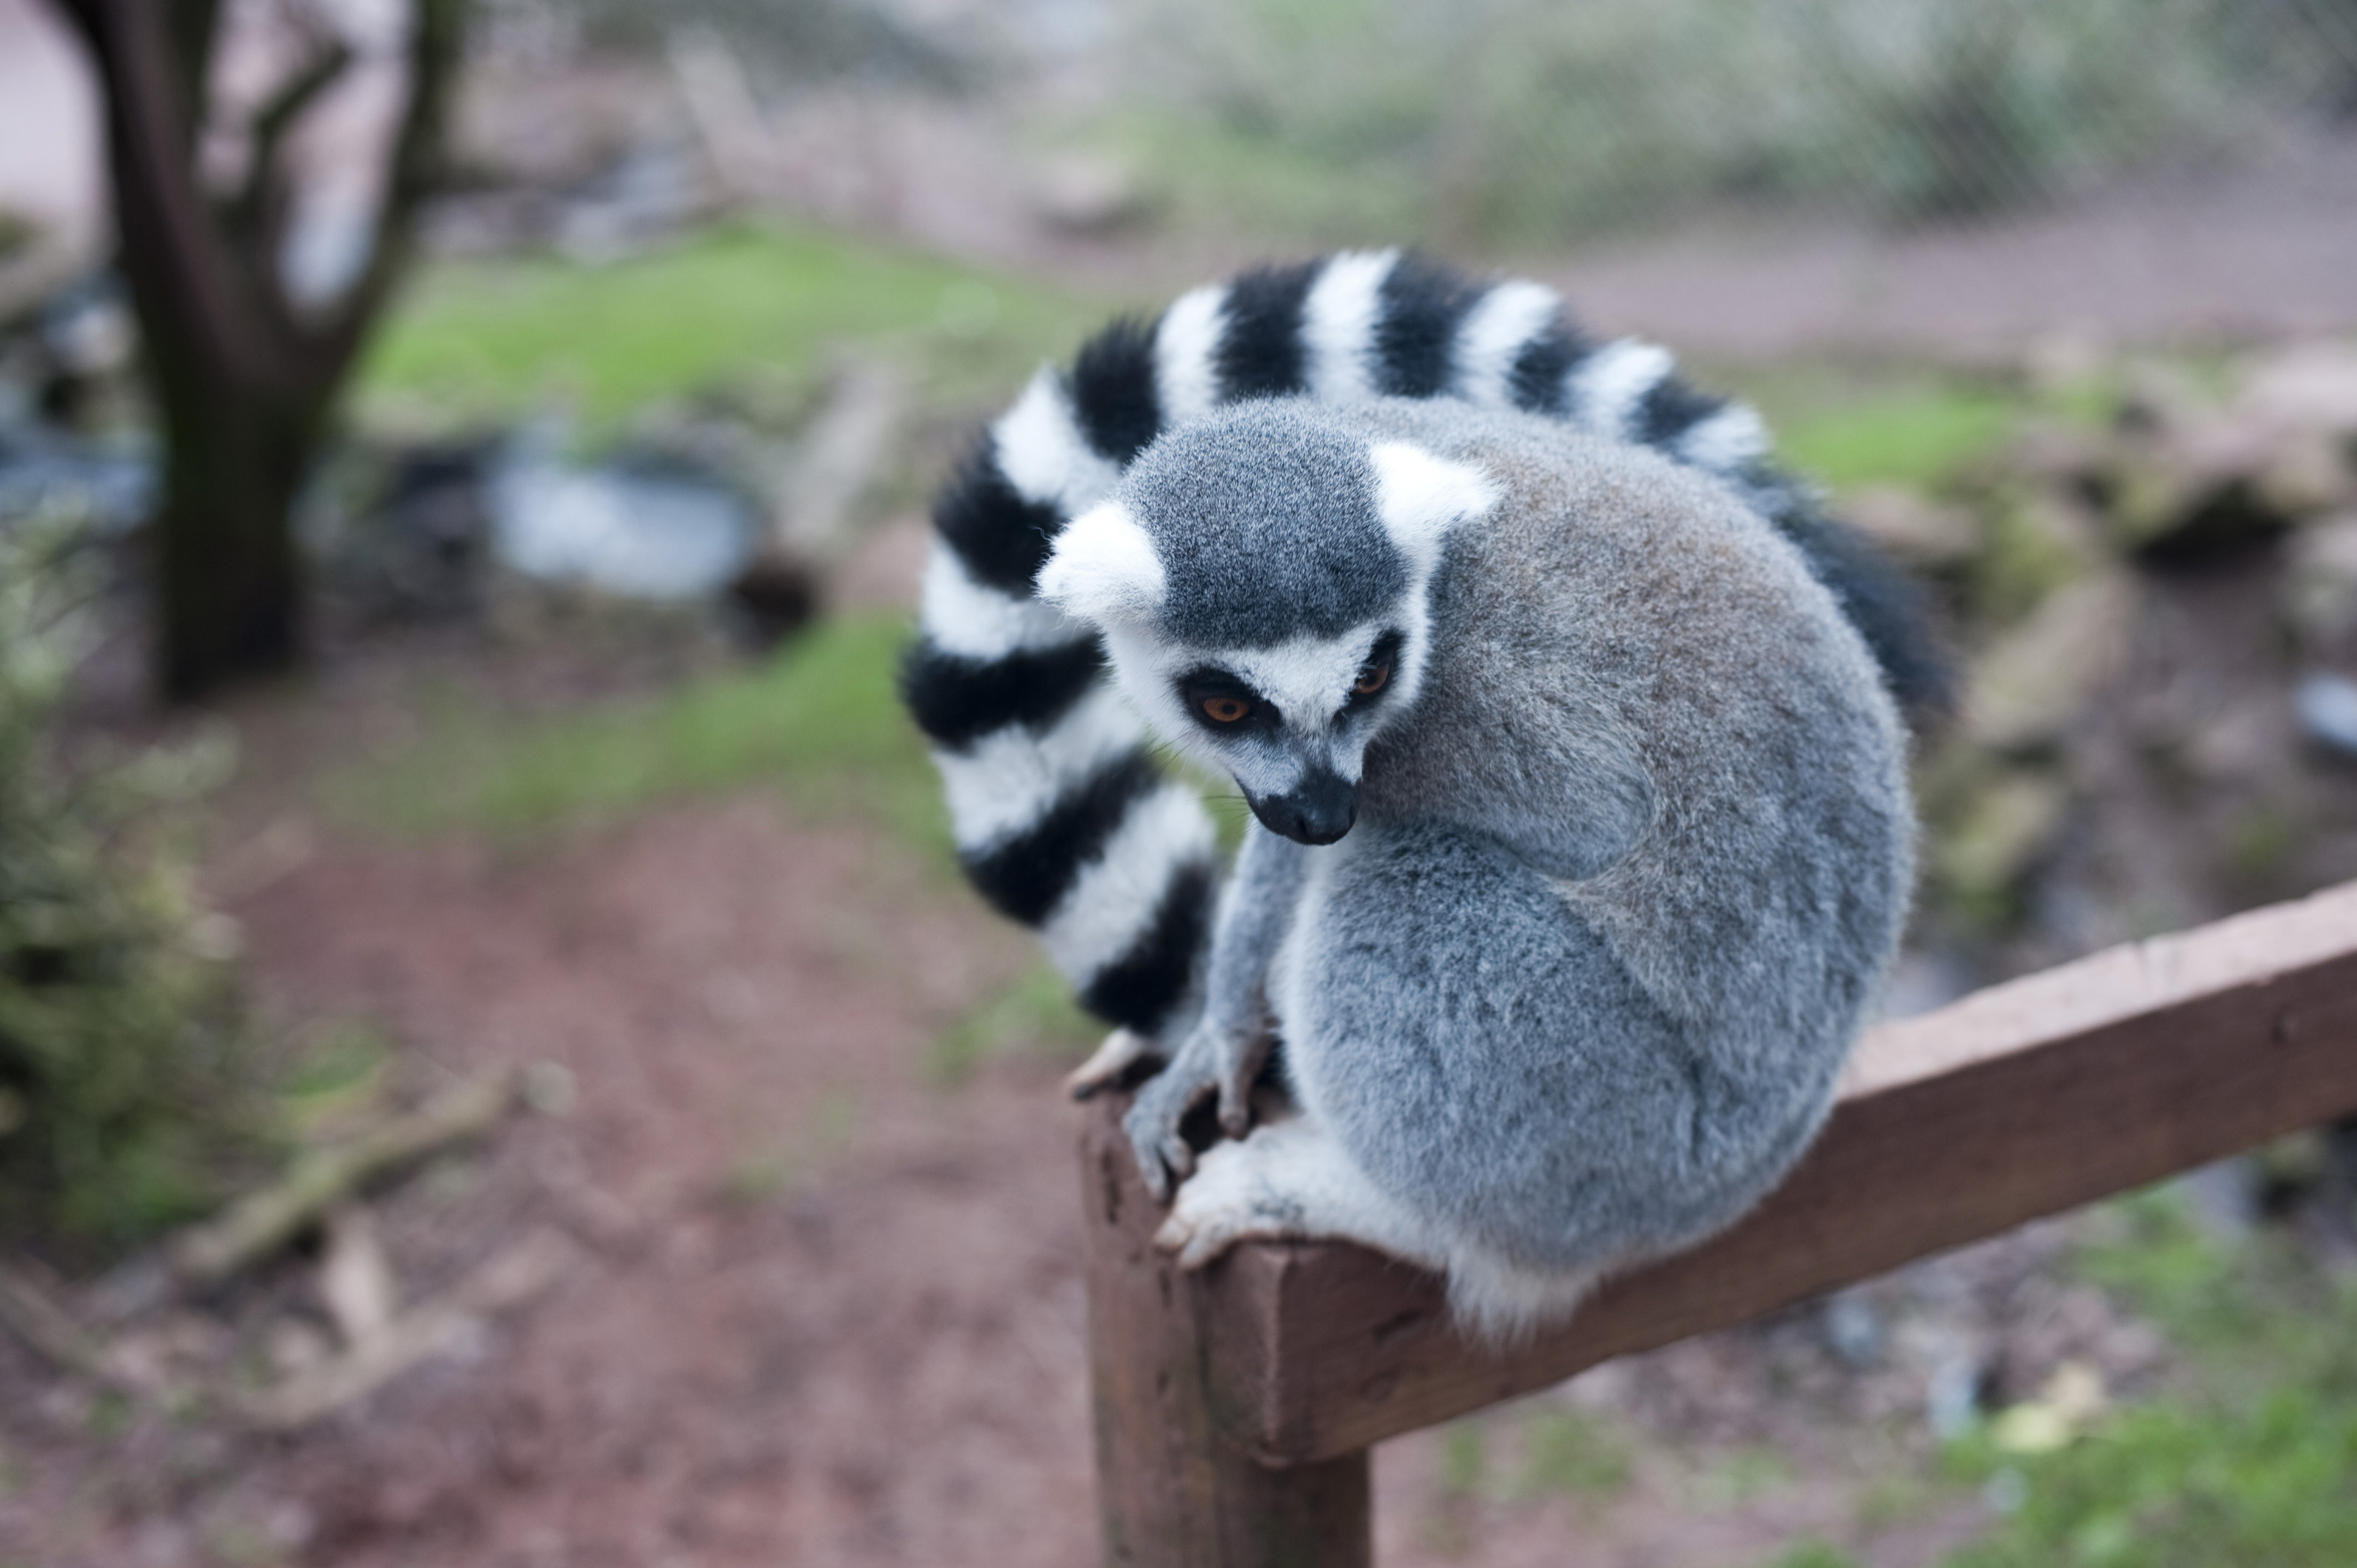 Res: 3200x2129, Ring-tailed lemur perched on a fence post with its distinctive barred or  striped black